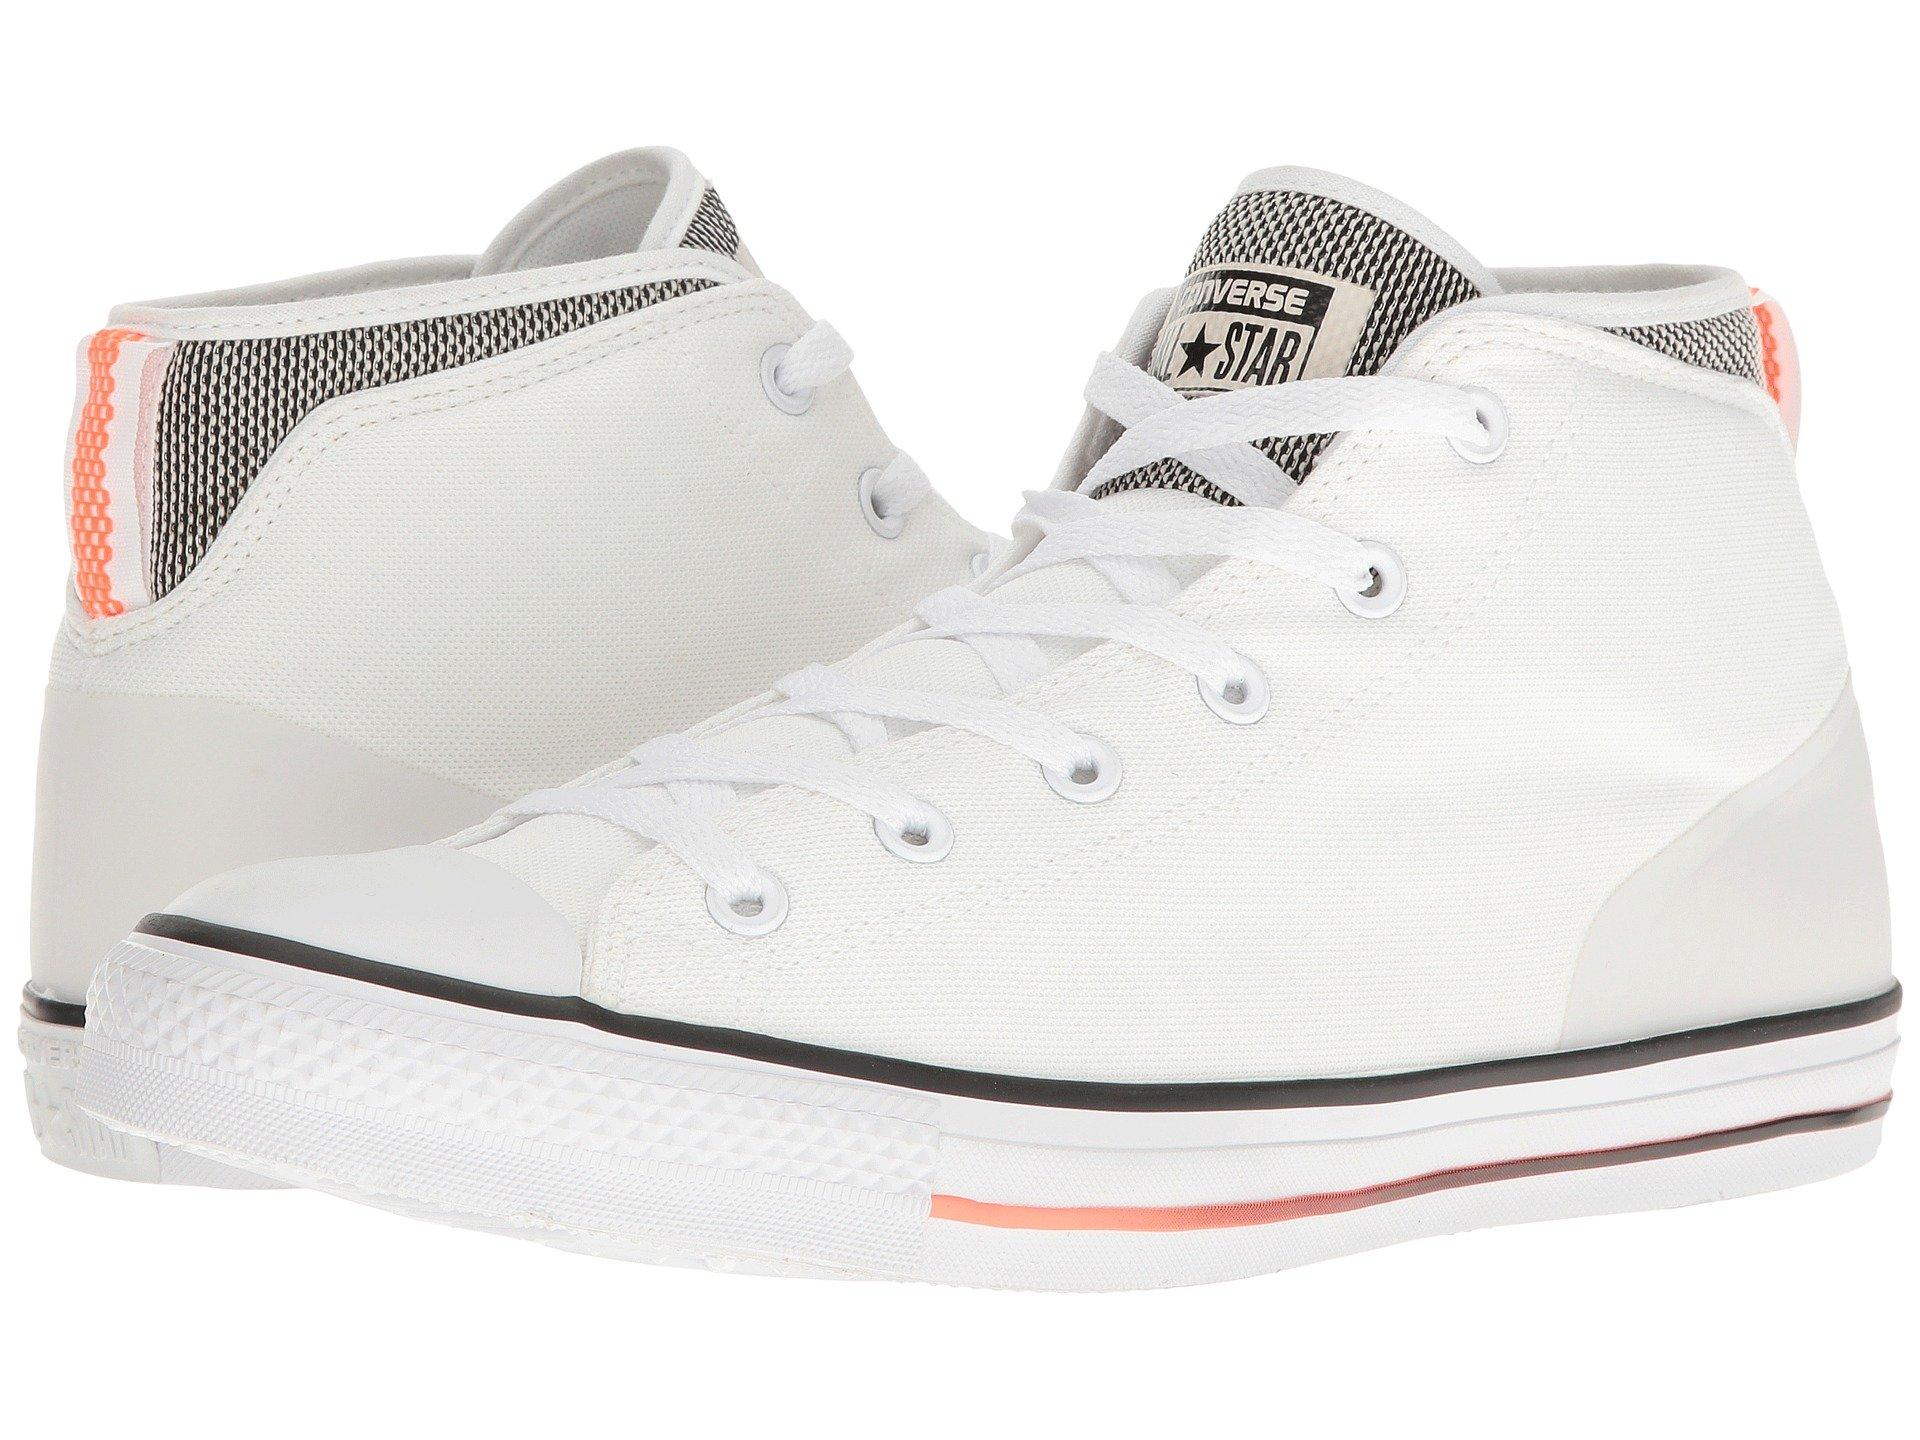 6be84654c47 Converse Chuck Taylor® All Star® Syde Street Summer Mid In White Black